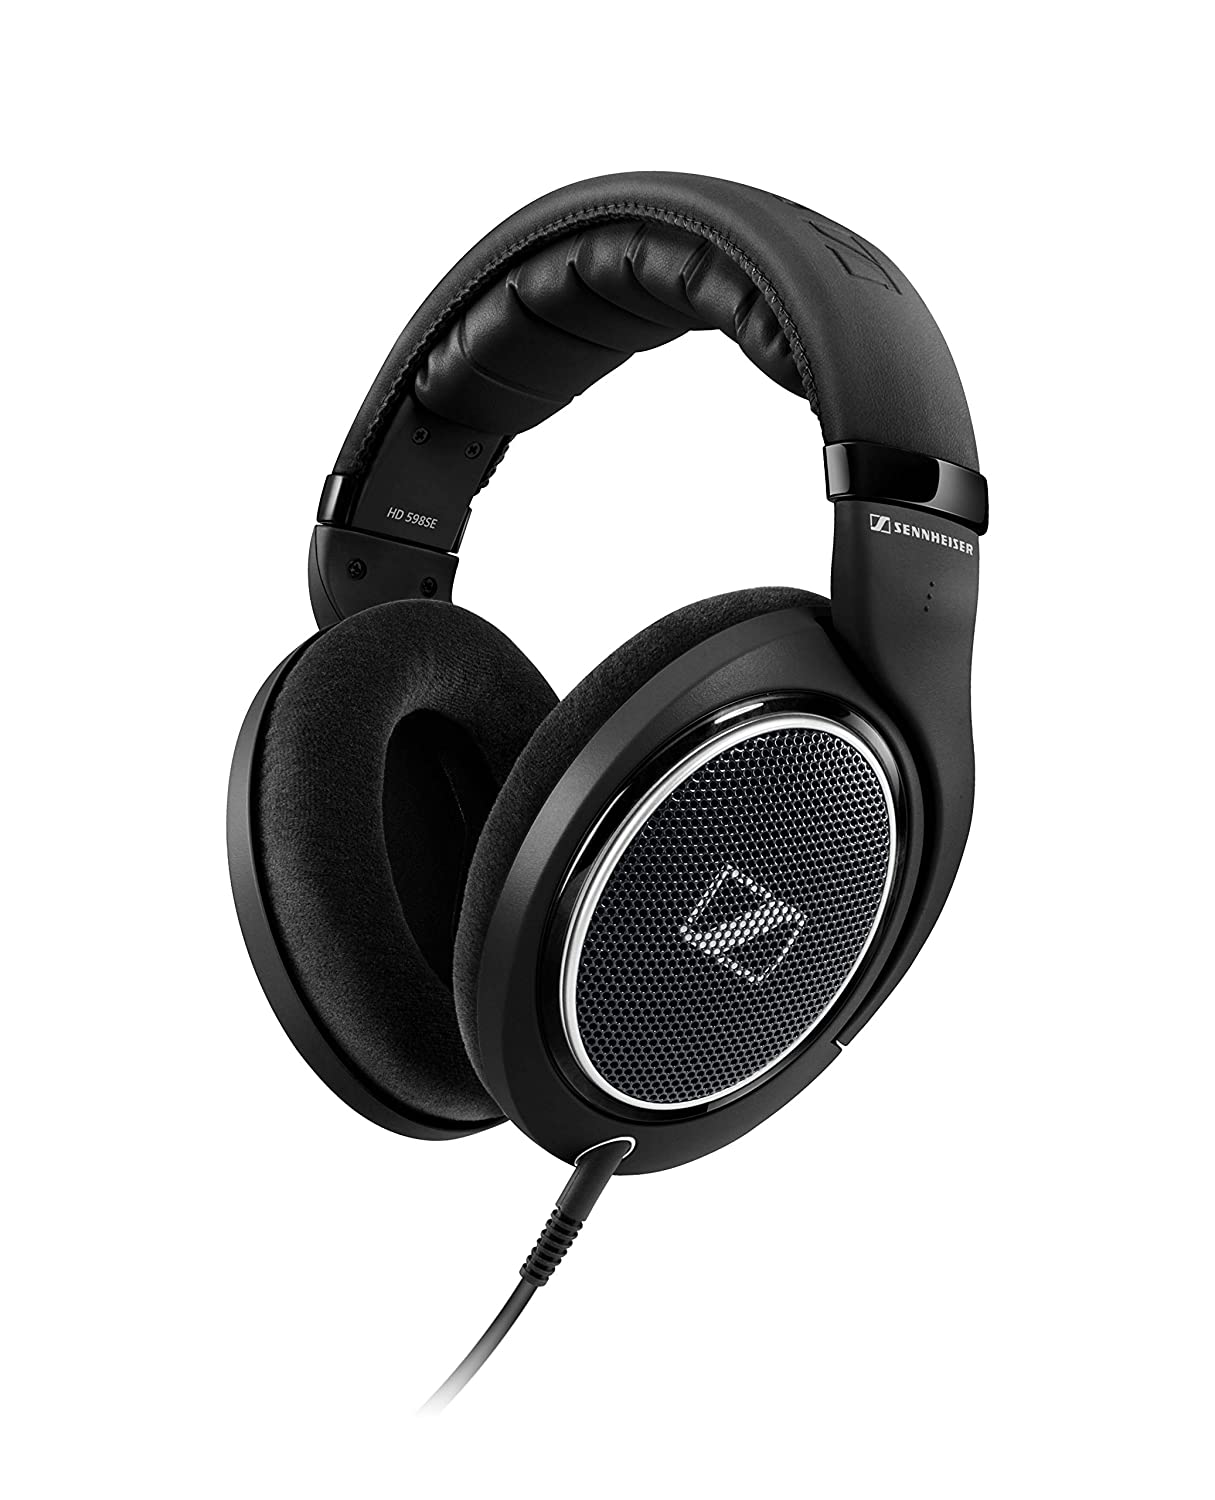 Sennheiser HD 598 Special Edition Over-Ear Headphones - Black